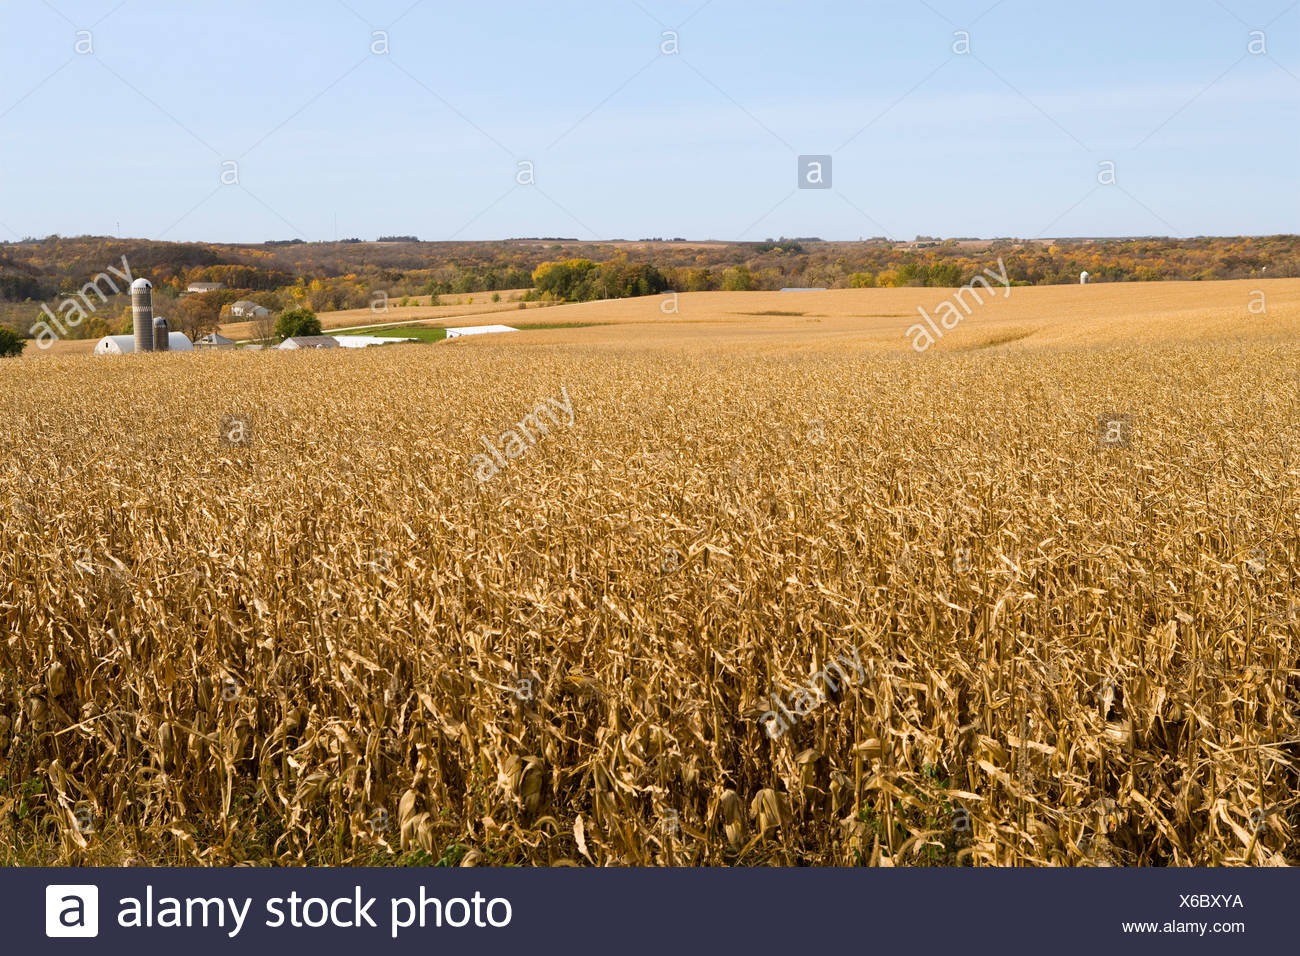 Large field of mature, harvest ready grain corn in Autumn with a farmstead in the background / near Northland, Minnesota, USA. - Stock Image